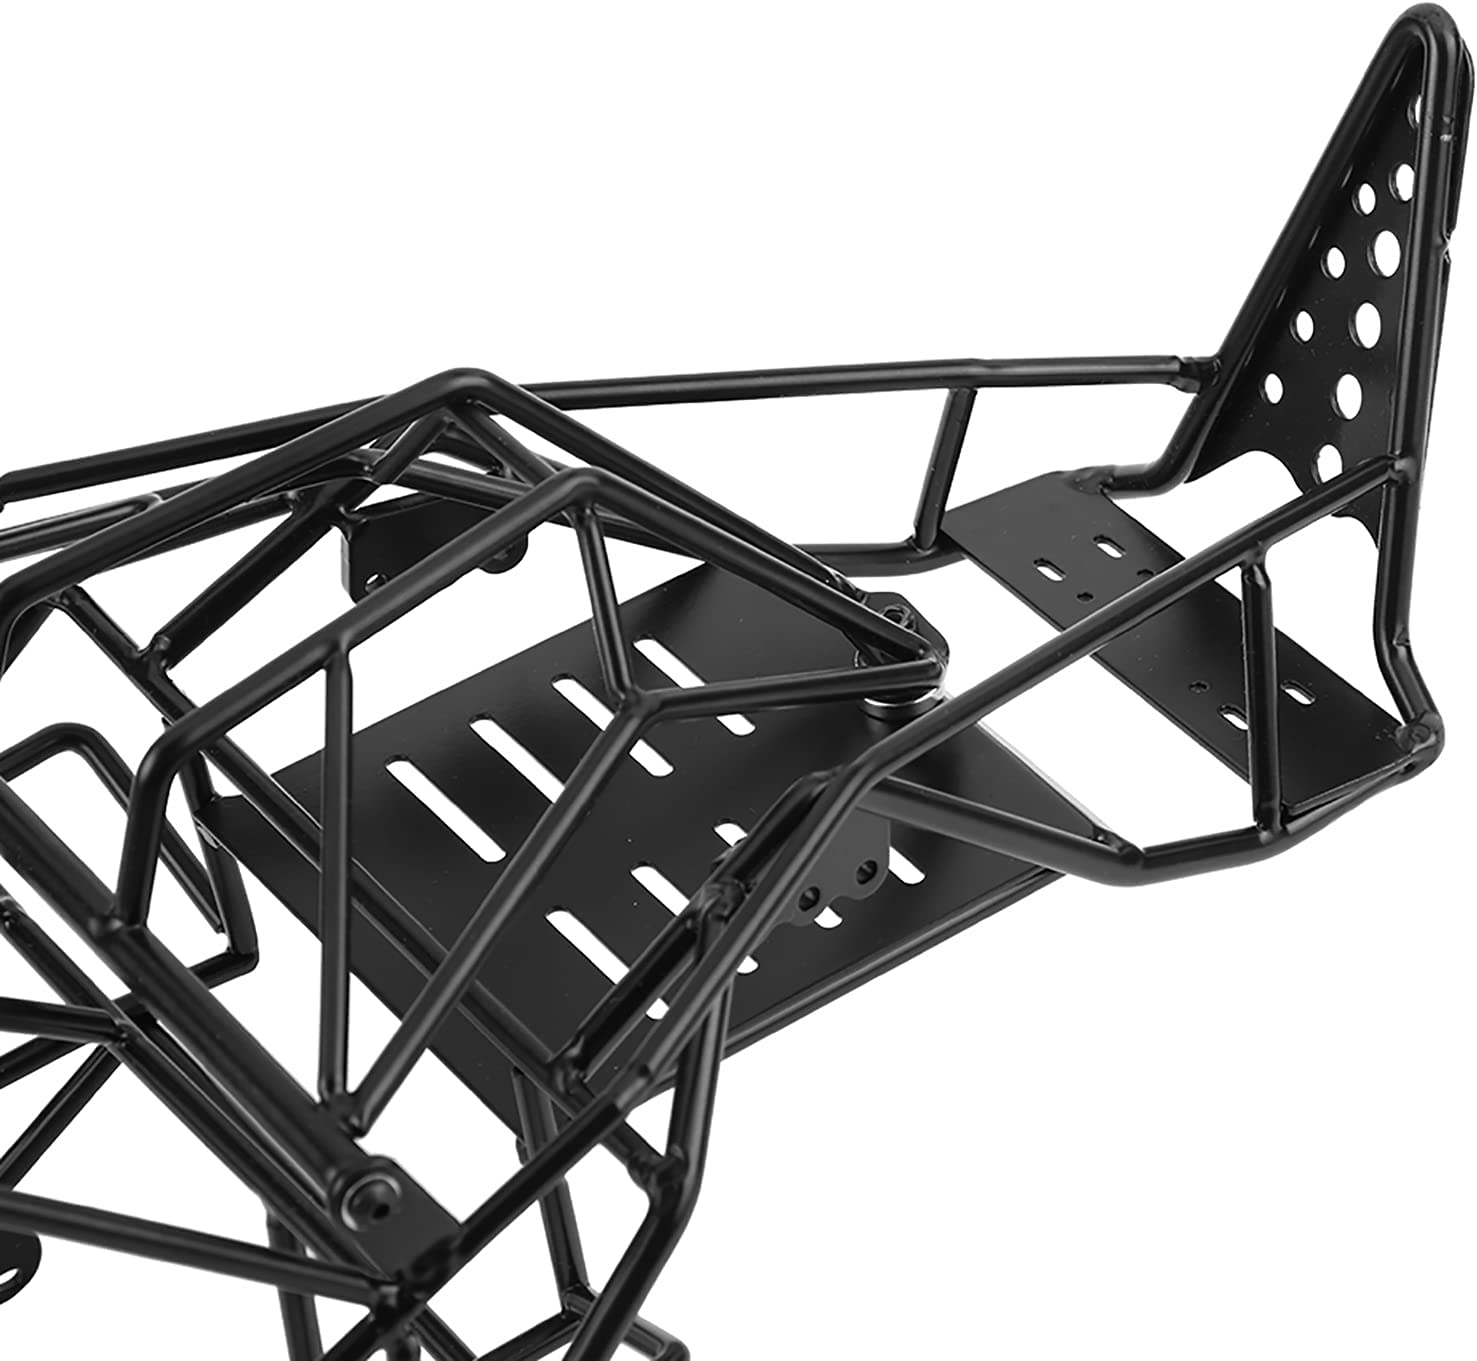 Aoutecen RC Car High order Frame Roll Metal Black Exquisite Quantity limited Superior